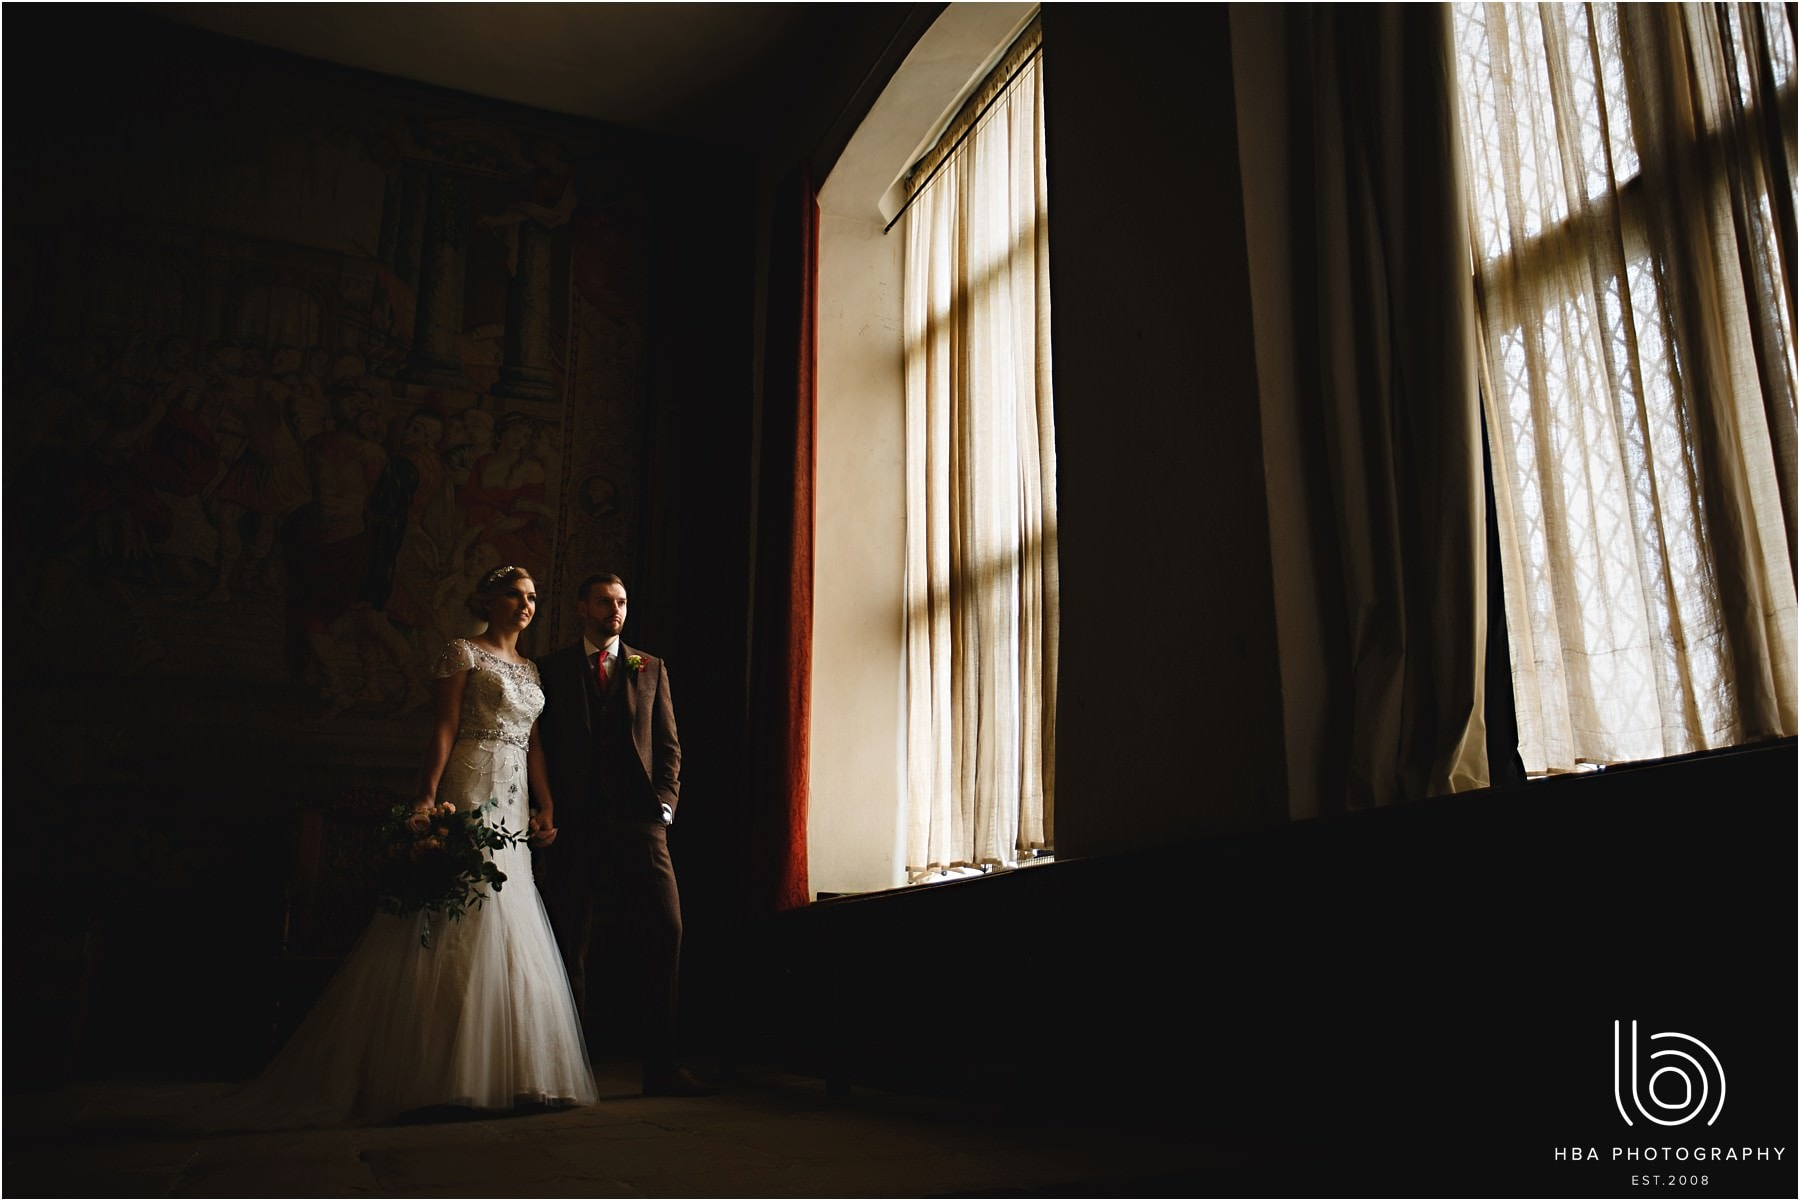 the bride and groom stood by the big windows at Hardwick Hall